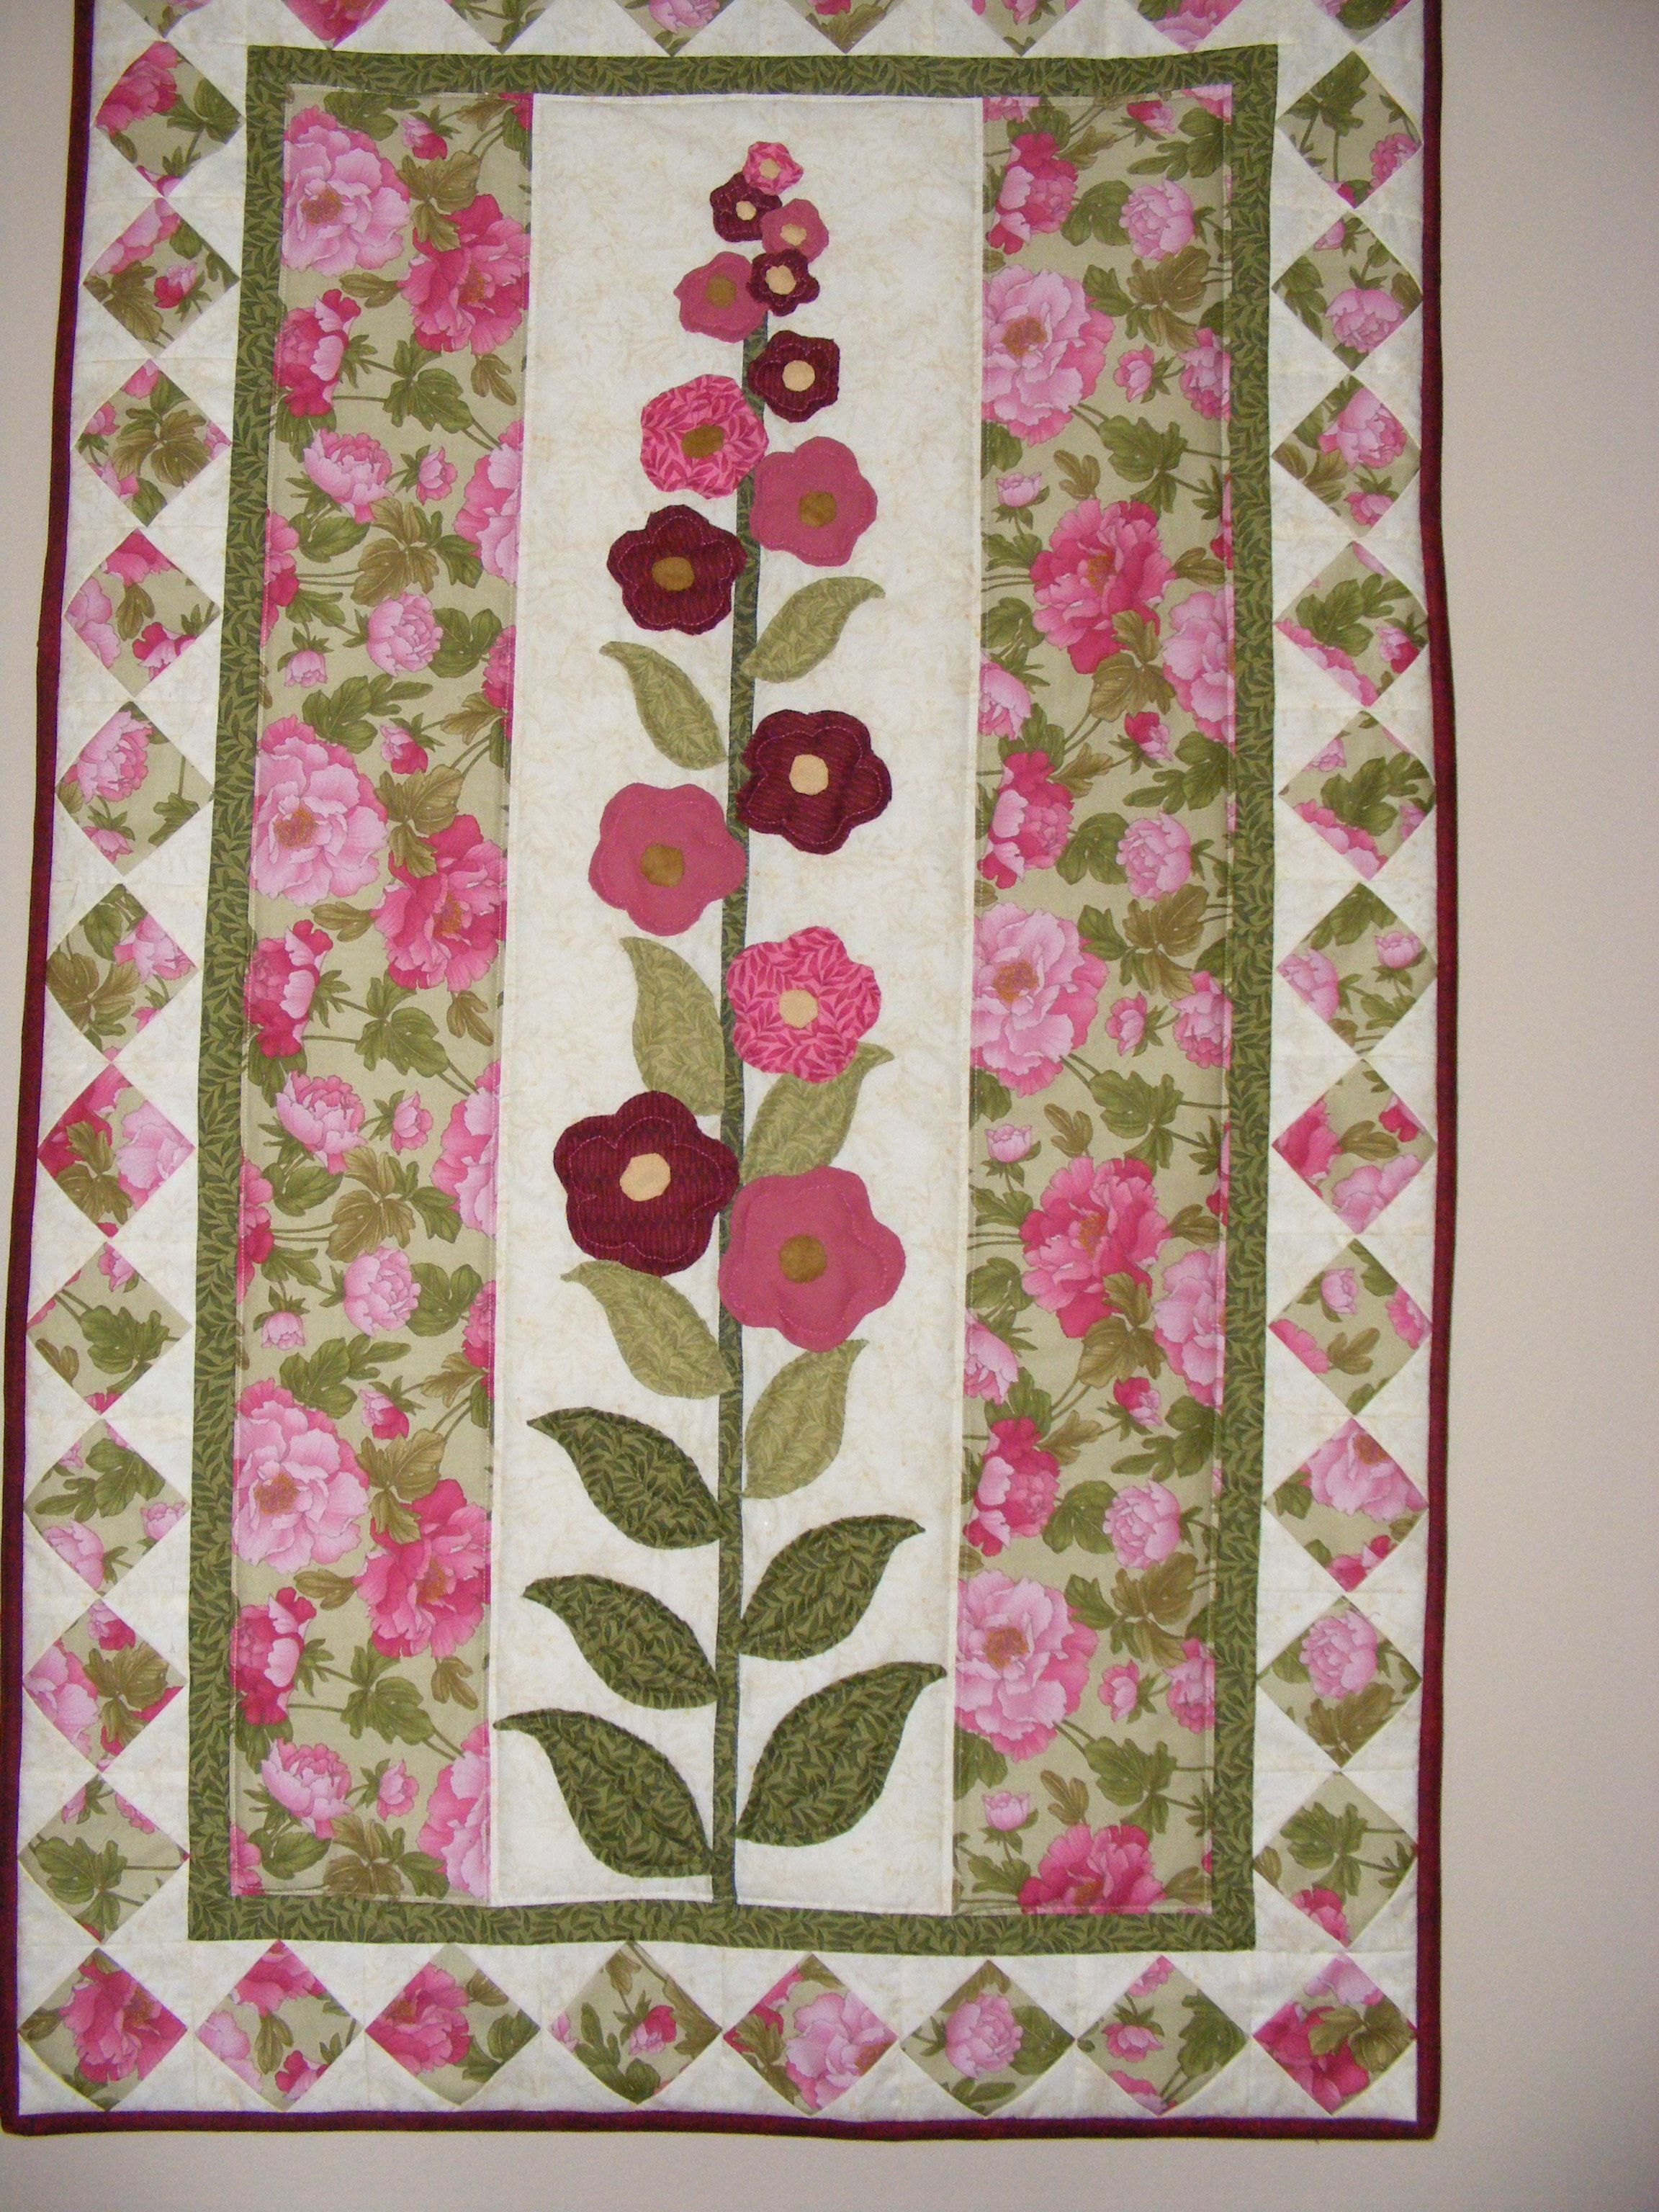 I first made this using wonder-under but I thought it looked rather flat and dull.  I ripped all the flower and leaves off and re-did it using traditional needle turn applique and I love it!